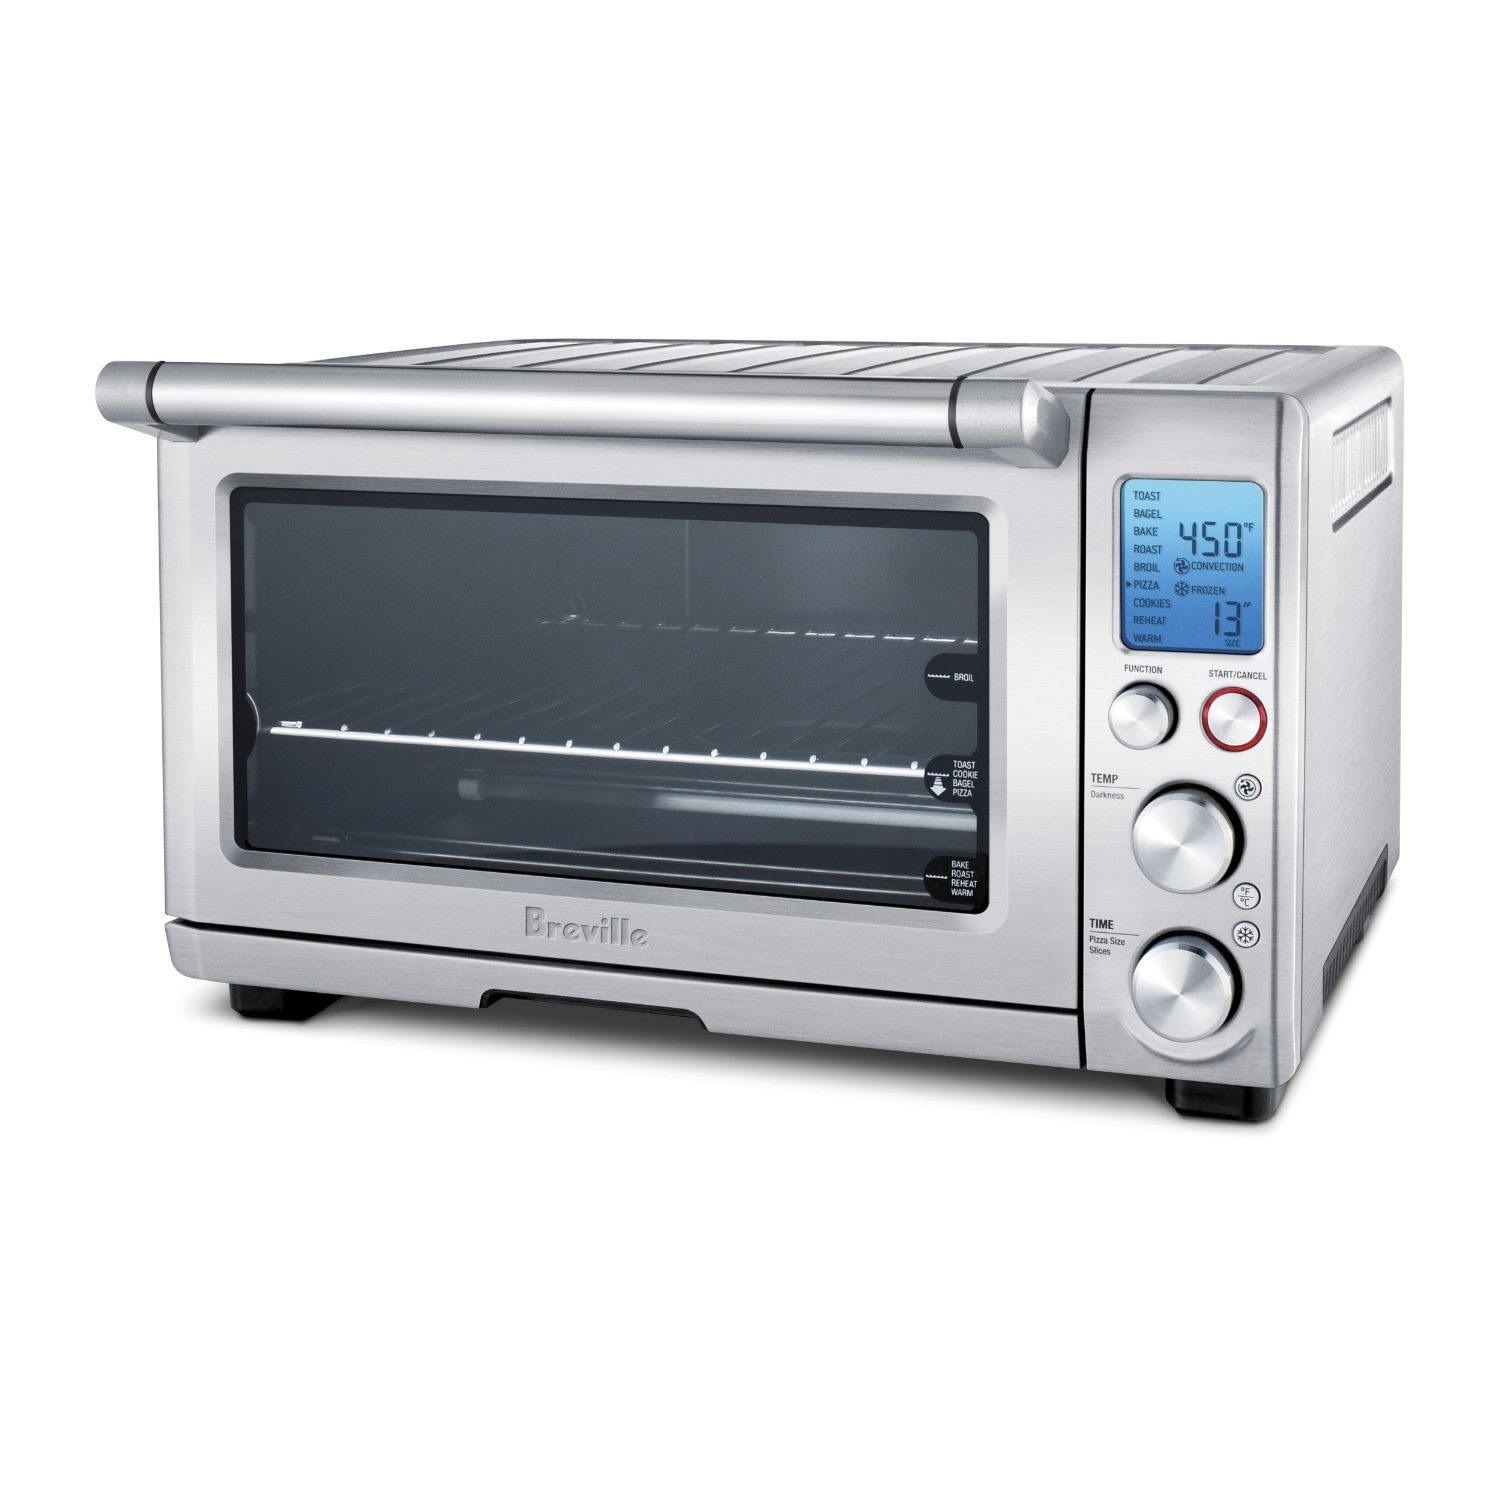 Best Toaster in the World: Toaster Oven